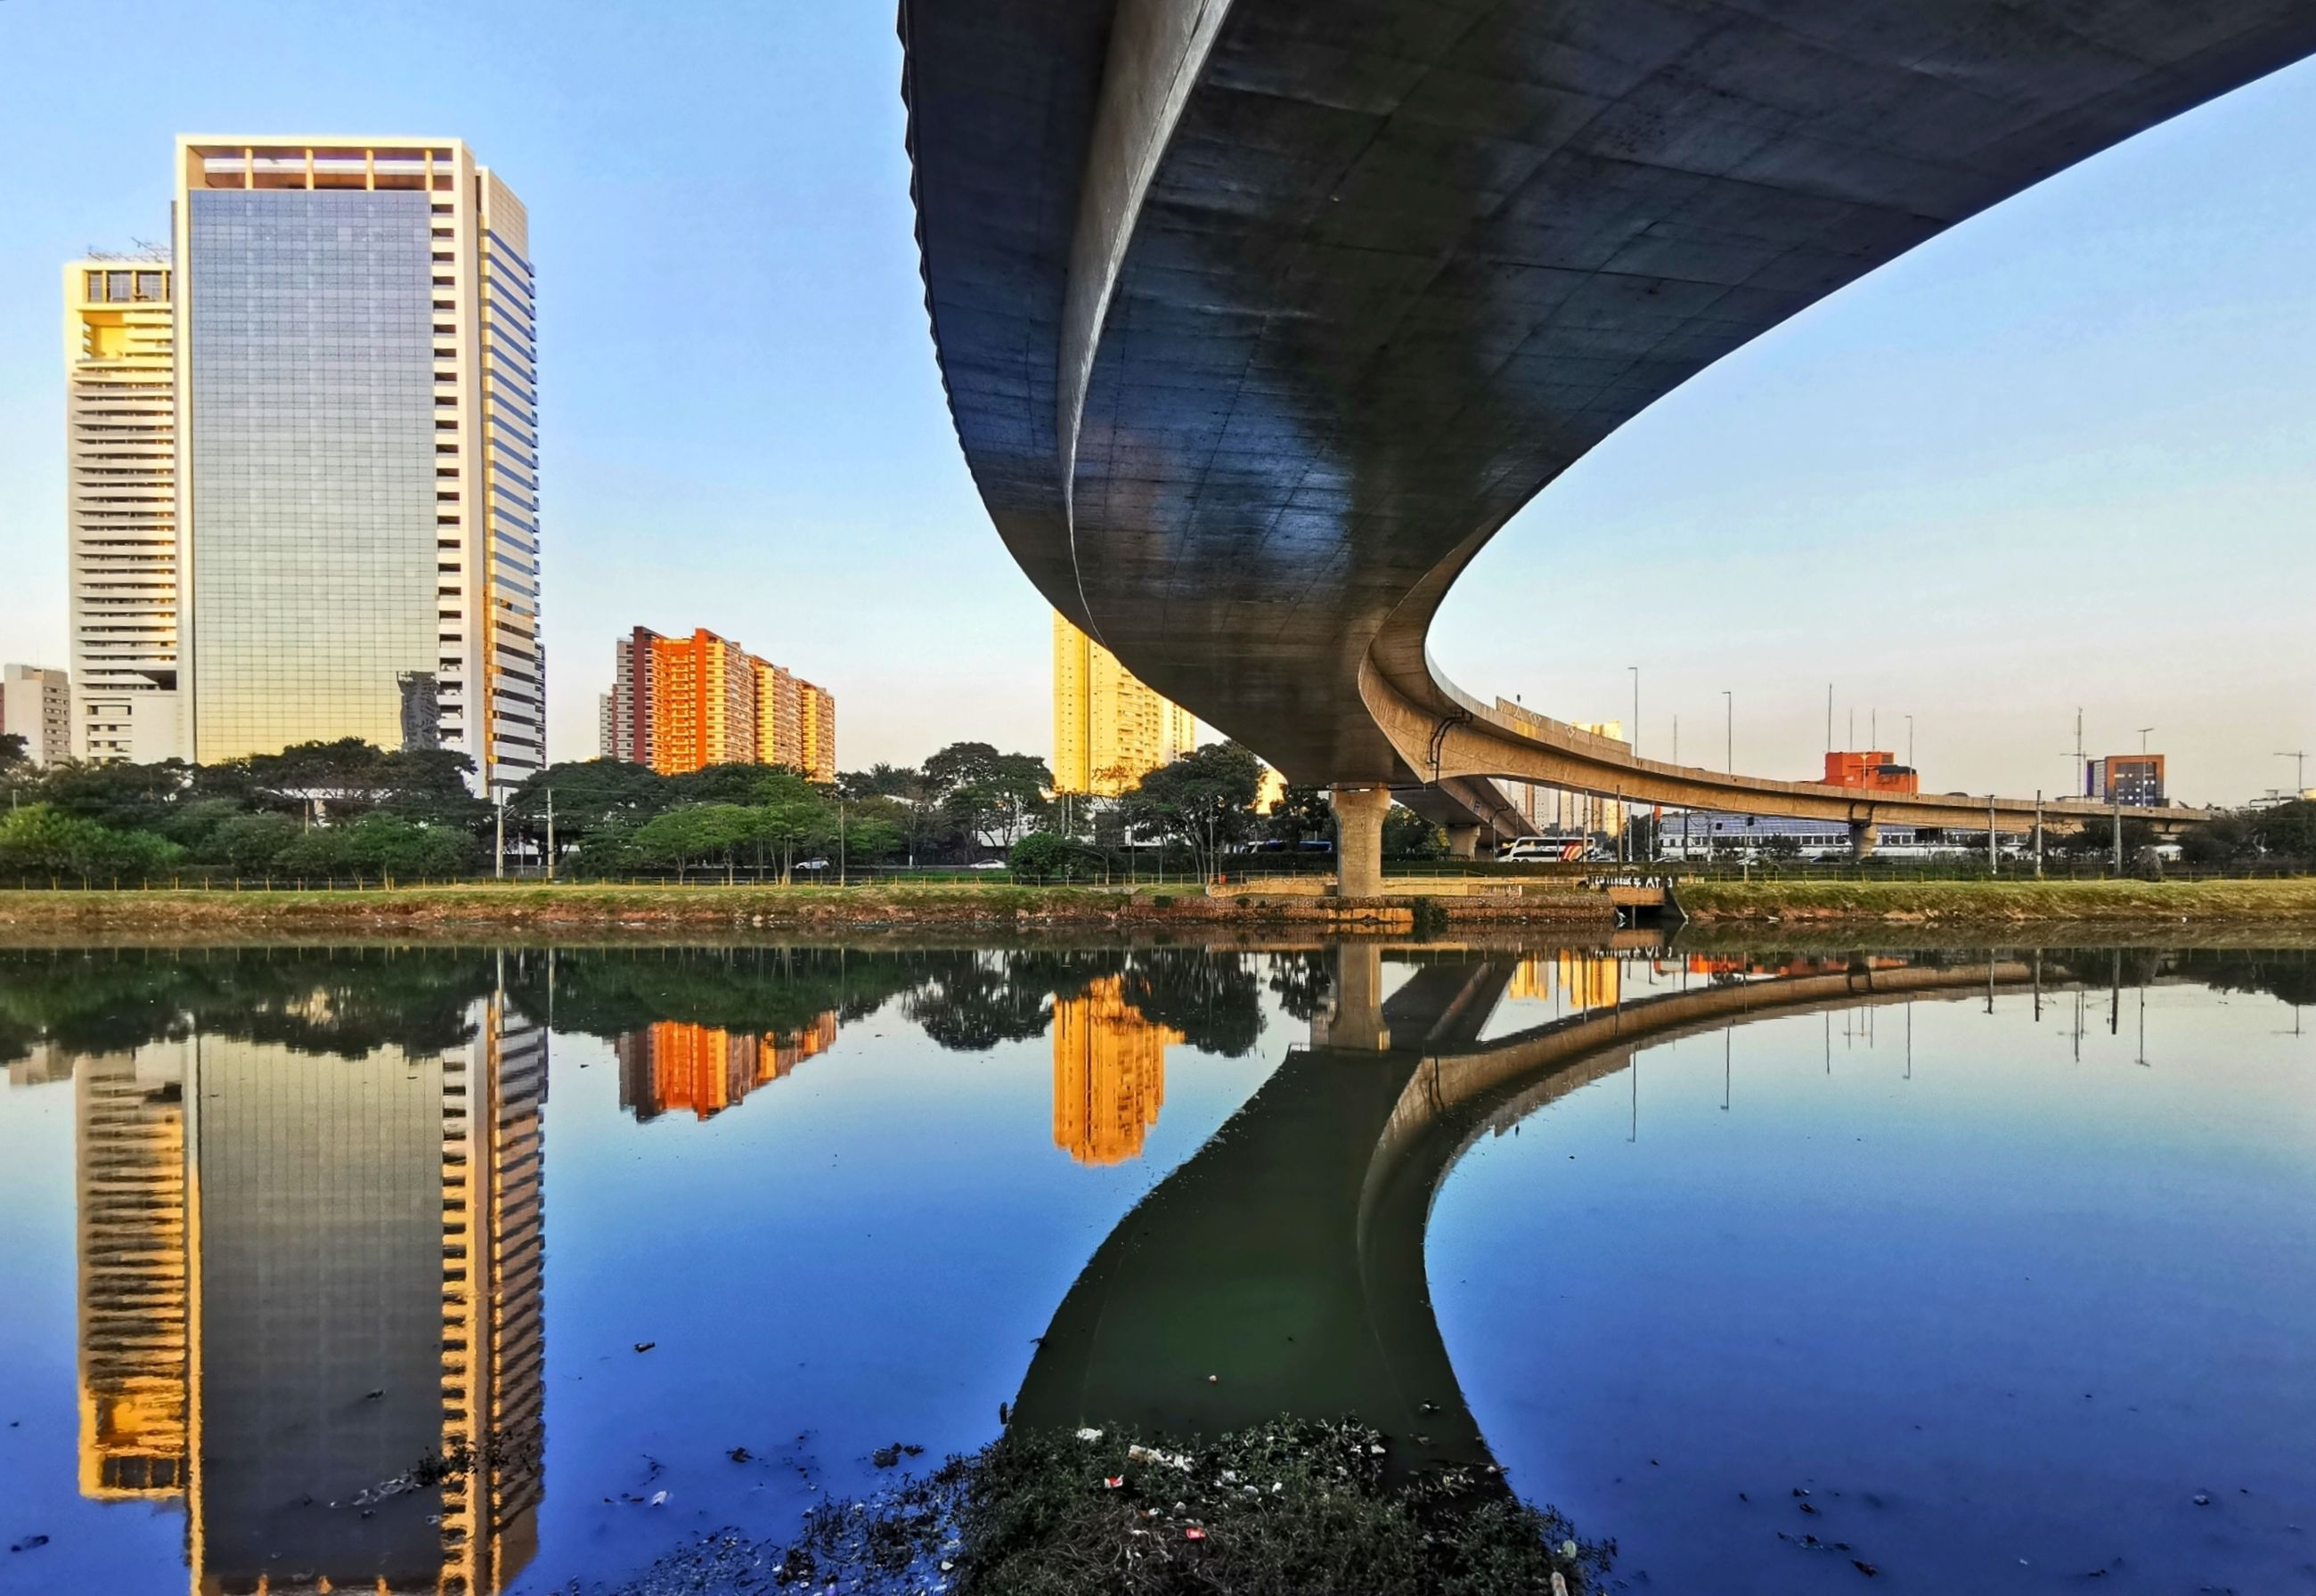 architecture, built structure, water, reflection, building exterior, bridge, sky, river, connection, bridge - man made structure, city, nature, waterfront, building, no people, office building exterior, day, transportation, clear sky, outdoors, skyscraper, modern, cityscape, arch bridge